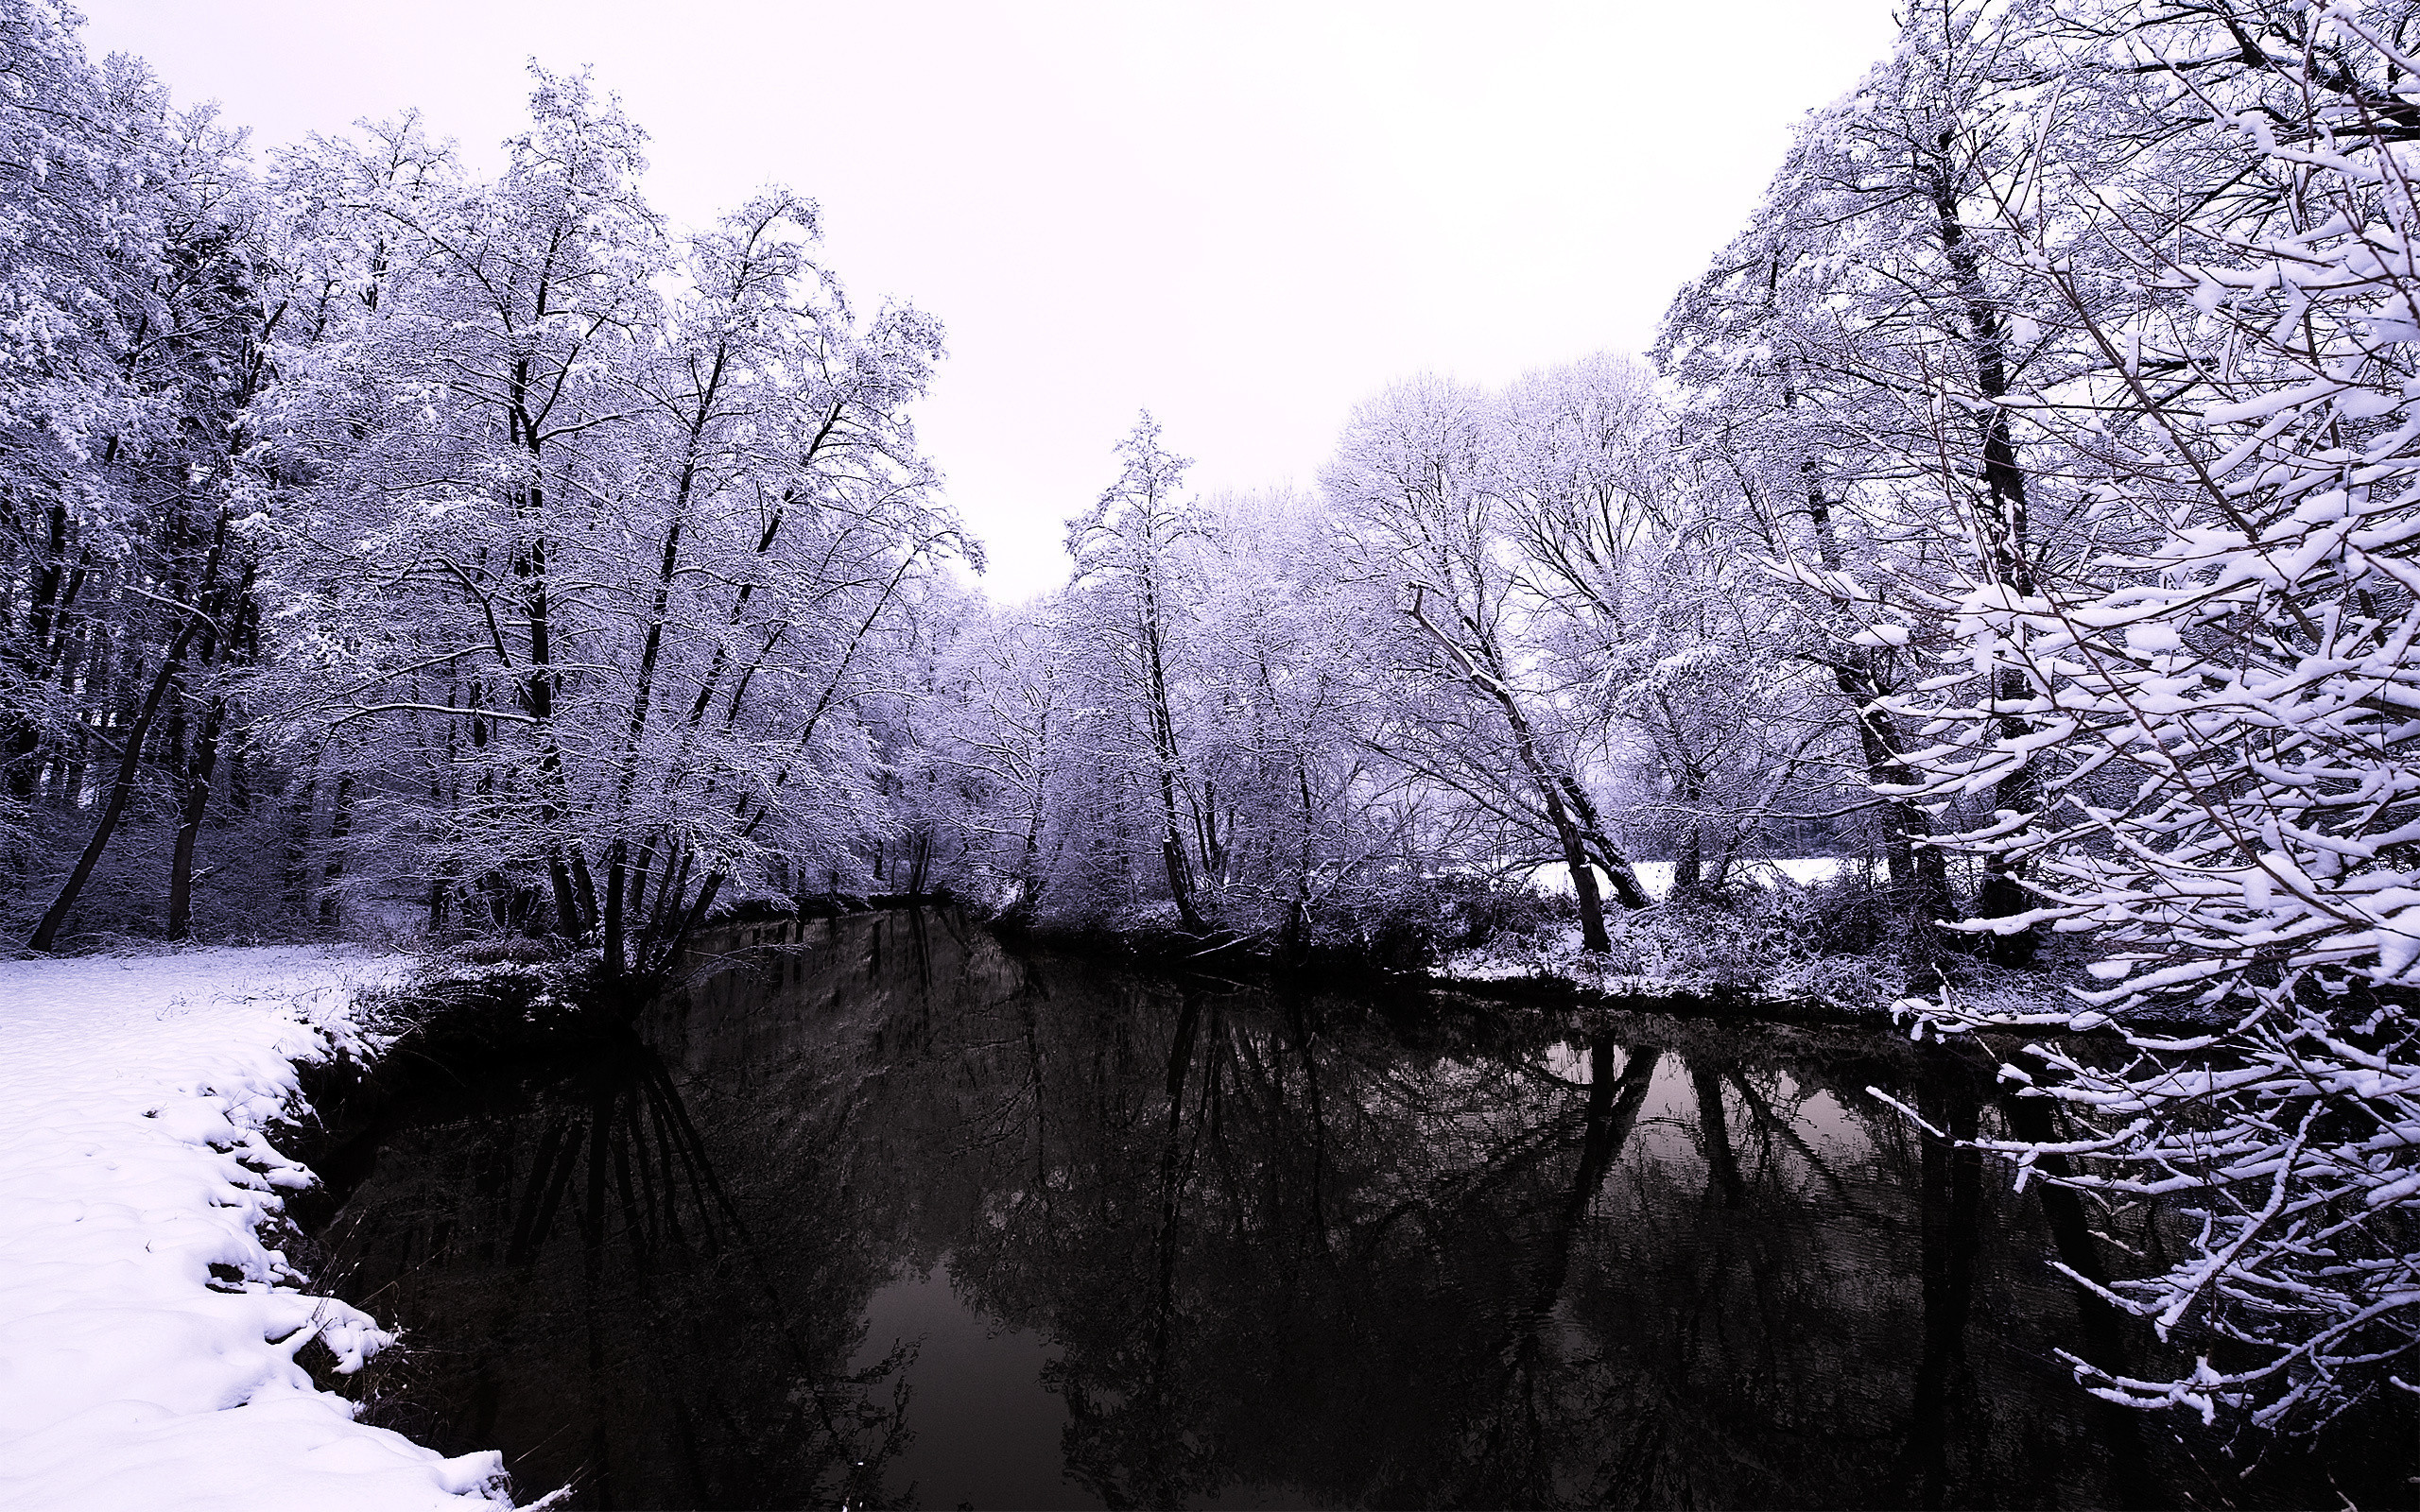 47893 download wallpaper Landscape, Winter, Nature, Snow, Lakes screensavers and pictures for free